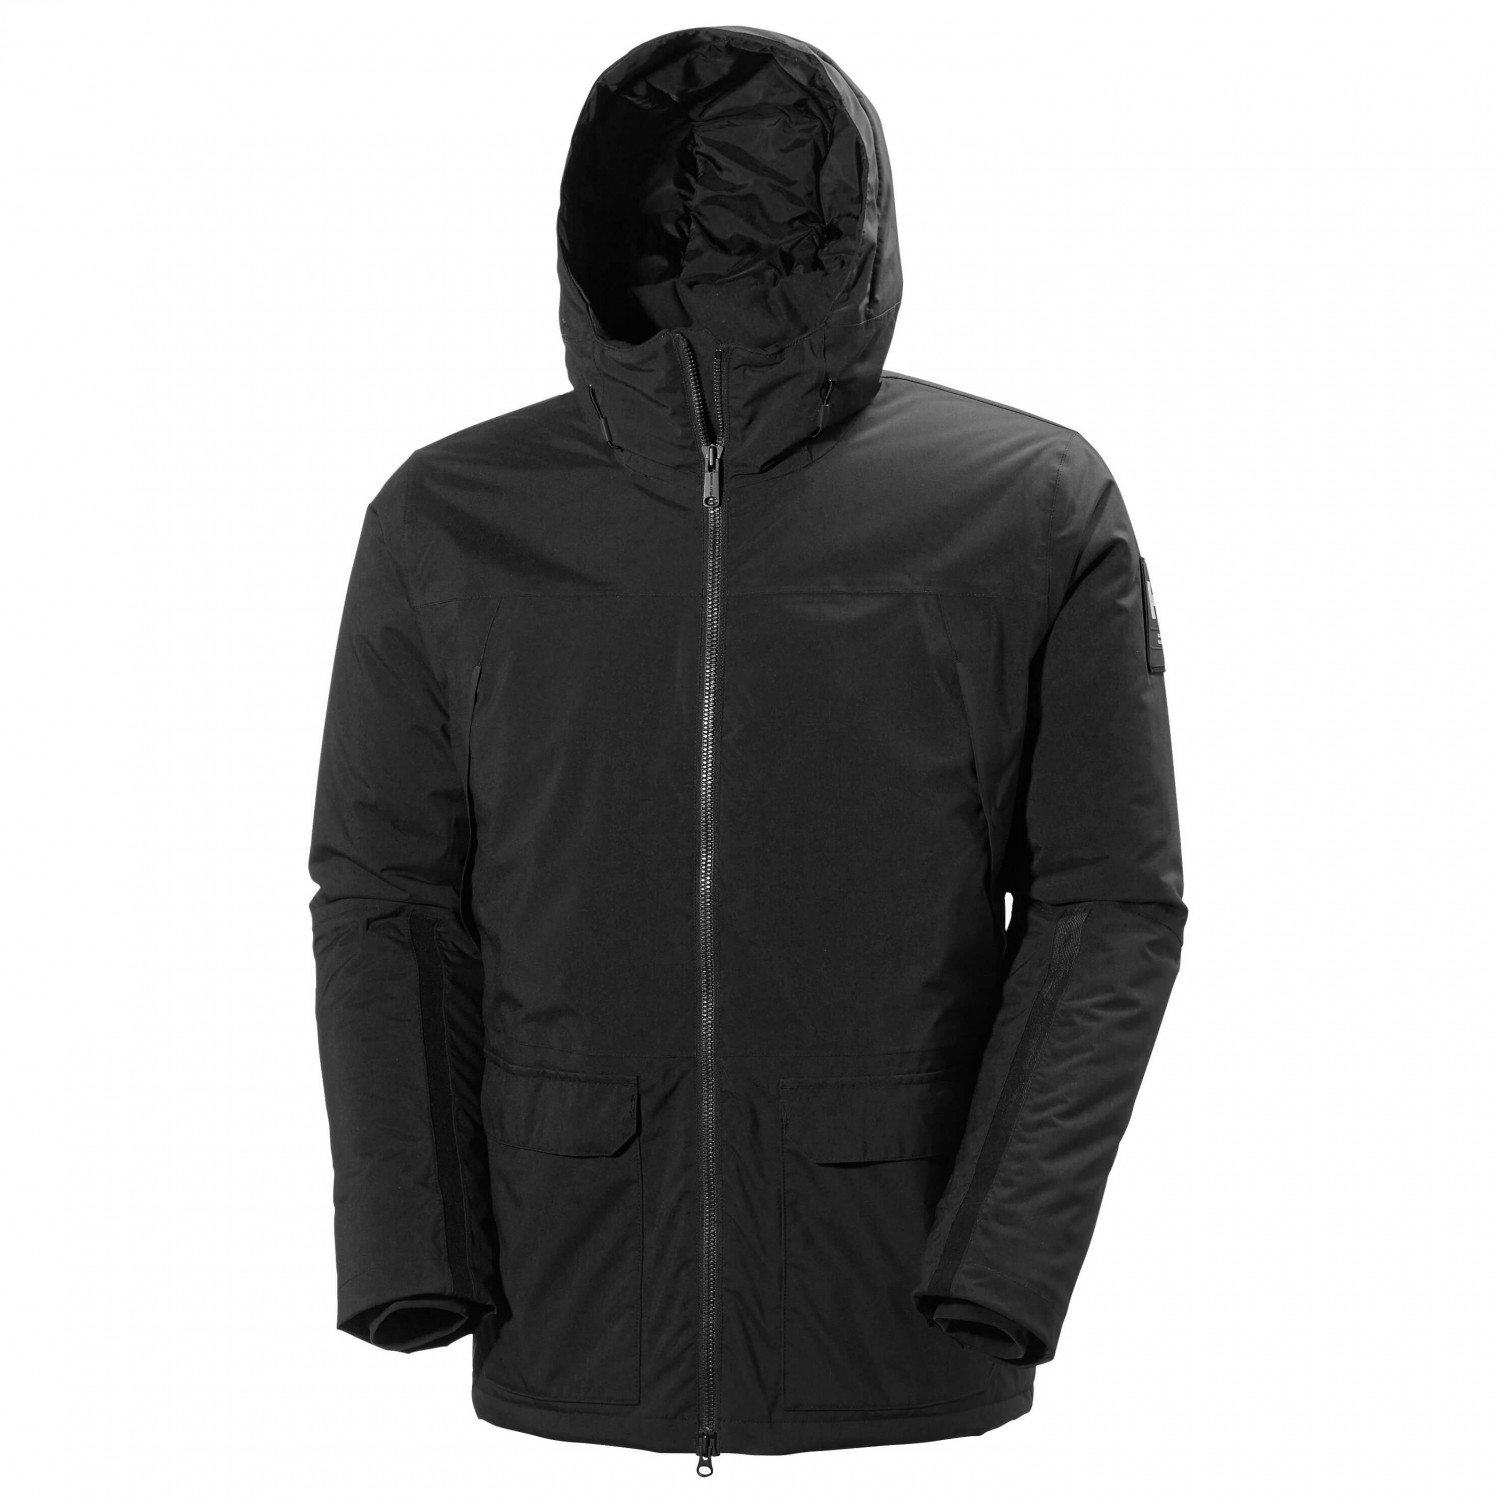 helly hansen shoreline parka winter jacket men 39 s free uk delivery. Black Bedroom Furniture Sets. Home Design Ideas